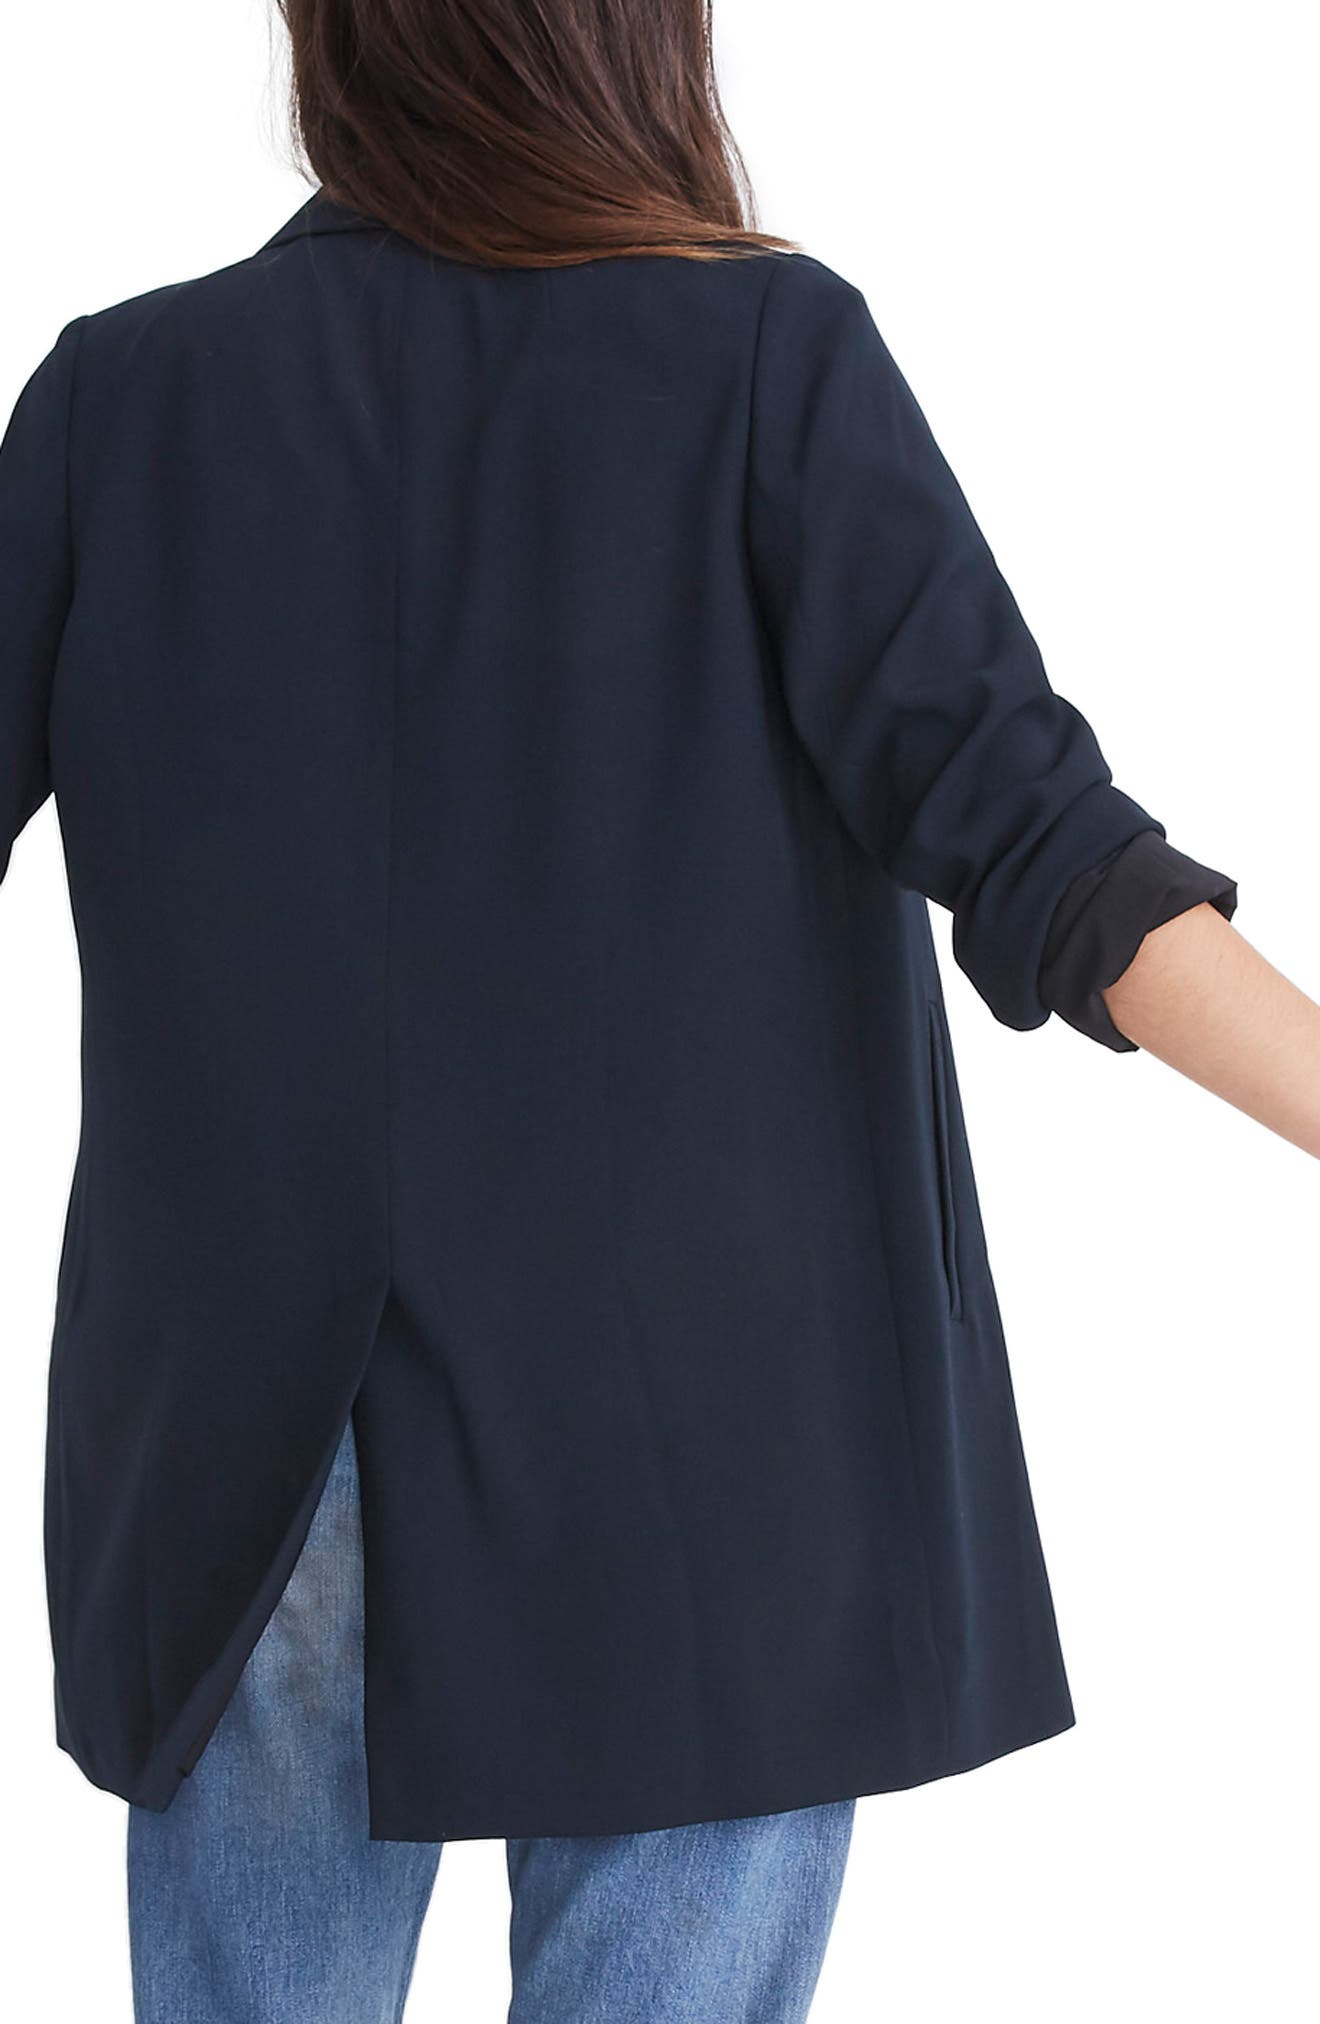 Caldwell Double Breasted Blazer,                             Alternate thumbnail 3, color,                             TRUE BLACK